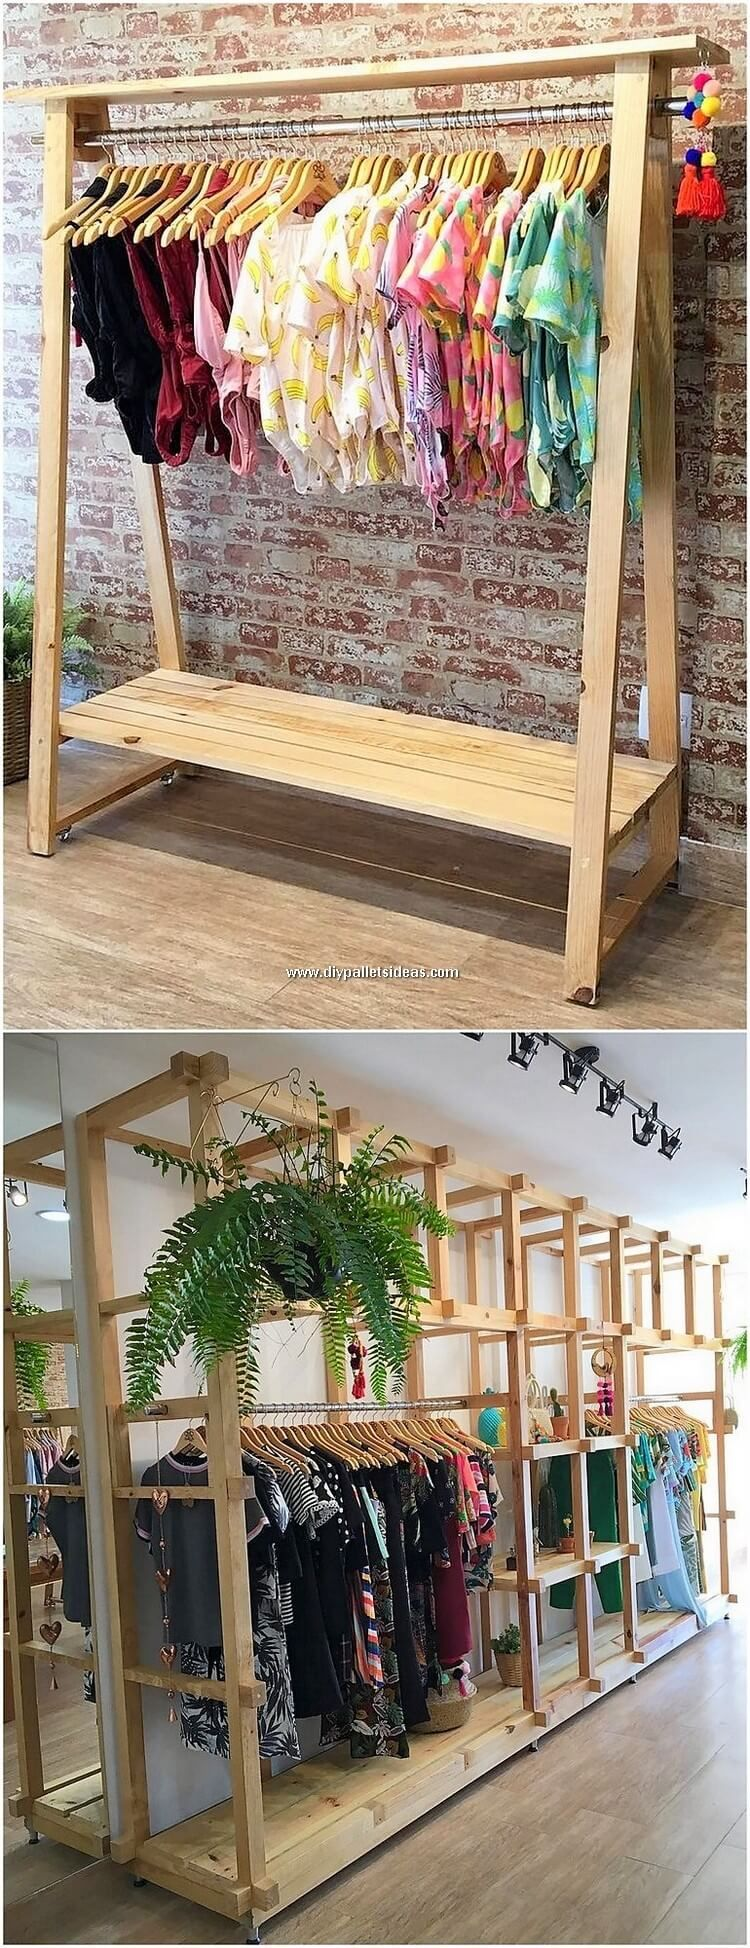 DIY Projects and Crafting Ideas with Recycled Pallets #oldpalletsforcrafting